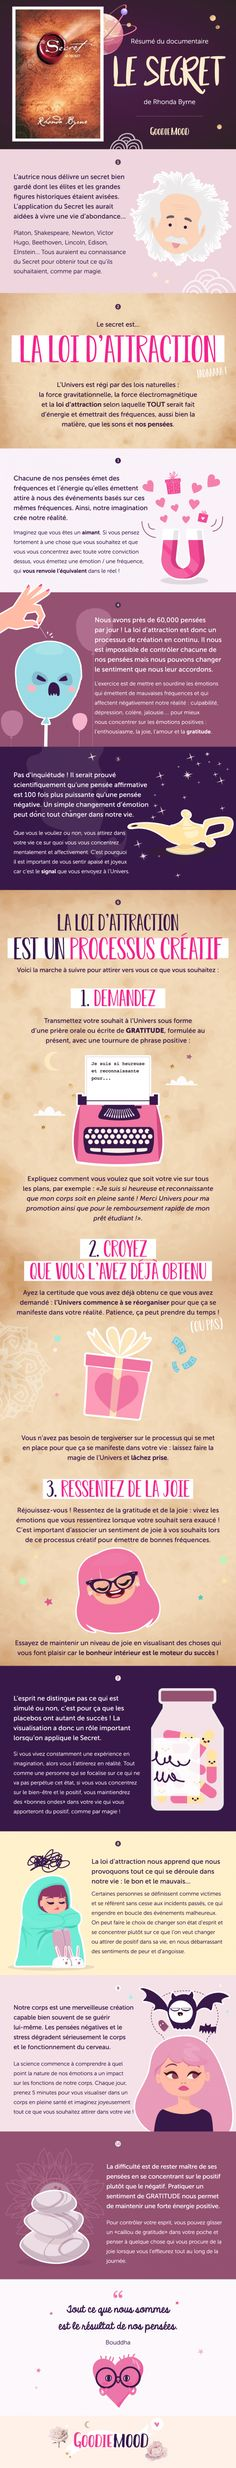 "Résumé du livre ""Le Secret"" de Rhonda - For me❤️ - Yorgo Angelopoulos Psychology A Level, Psychology Books, Rhonda Byrne, Zen Quotes, Inspirational Quotes, Coaching Questions, Cv Resume Template, Miracle Morning, Positive Mind"